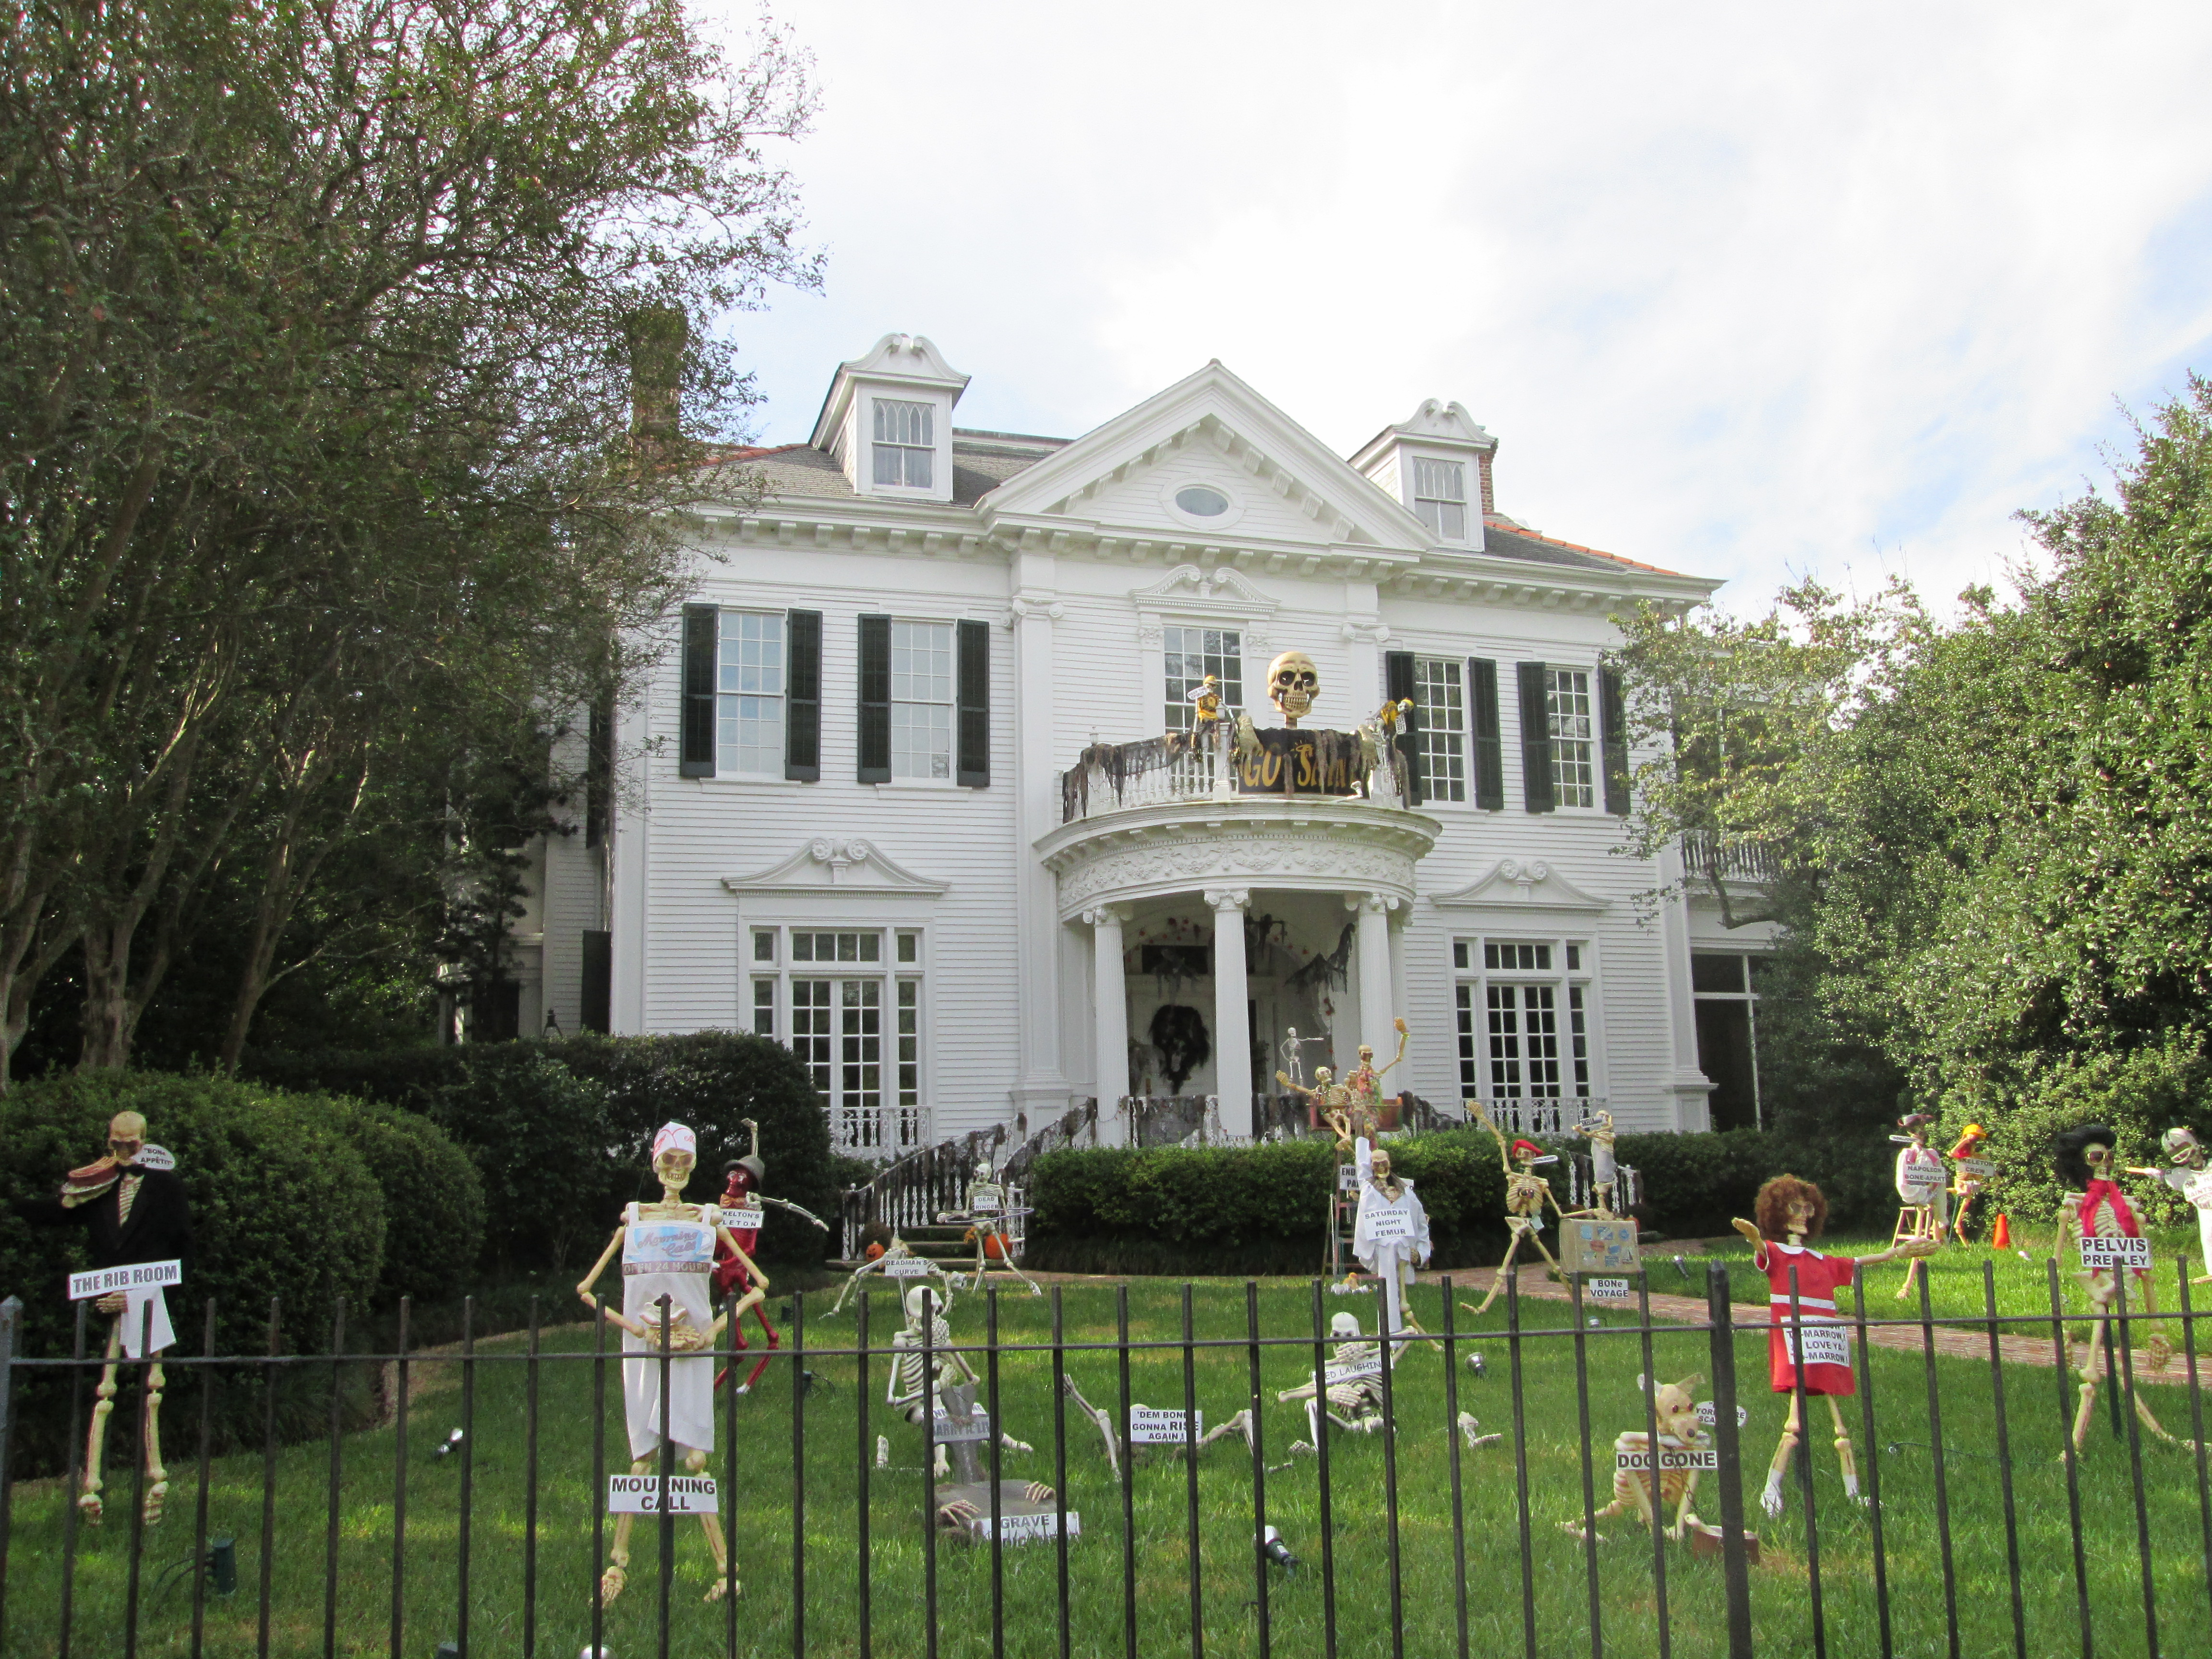 filestcharles halloween skeleton housejpg - Decorations For Houses